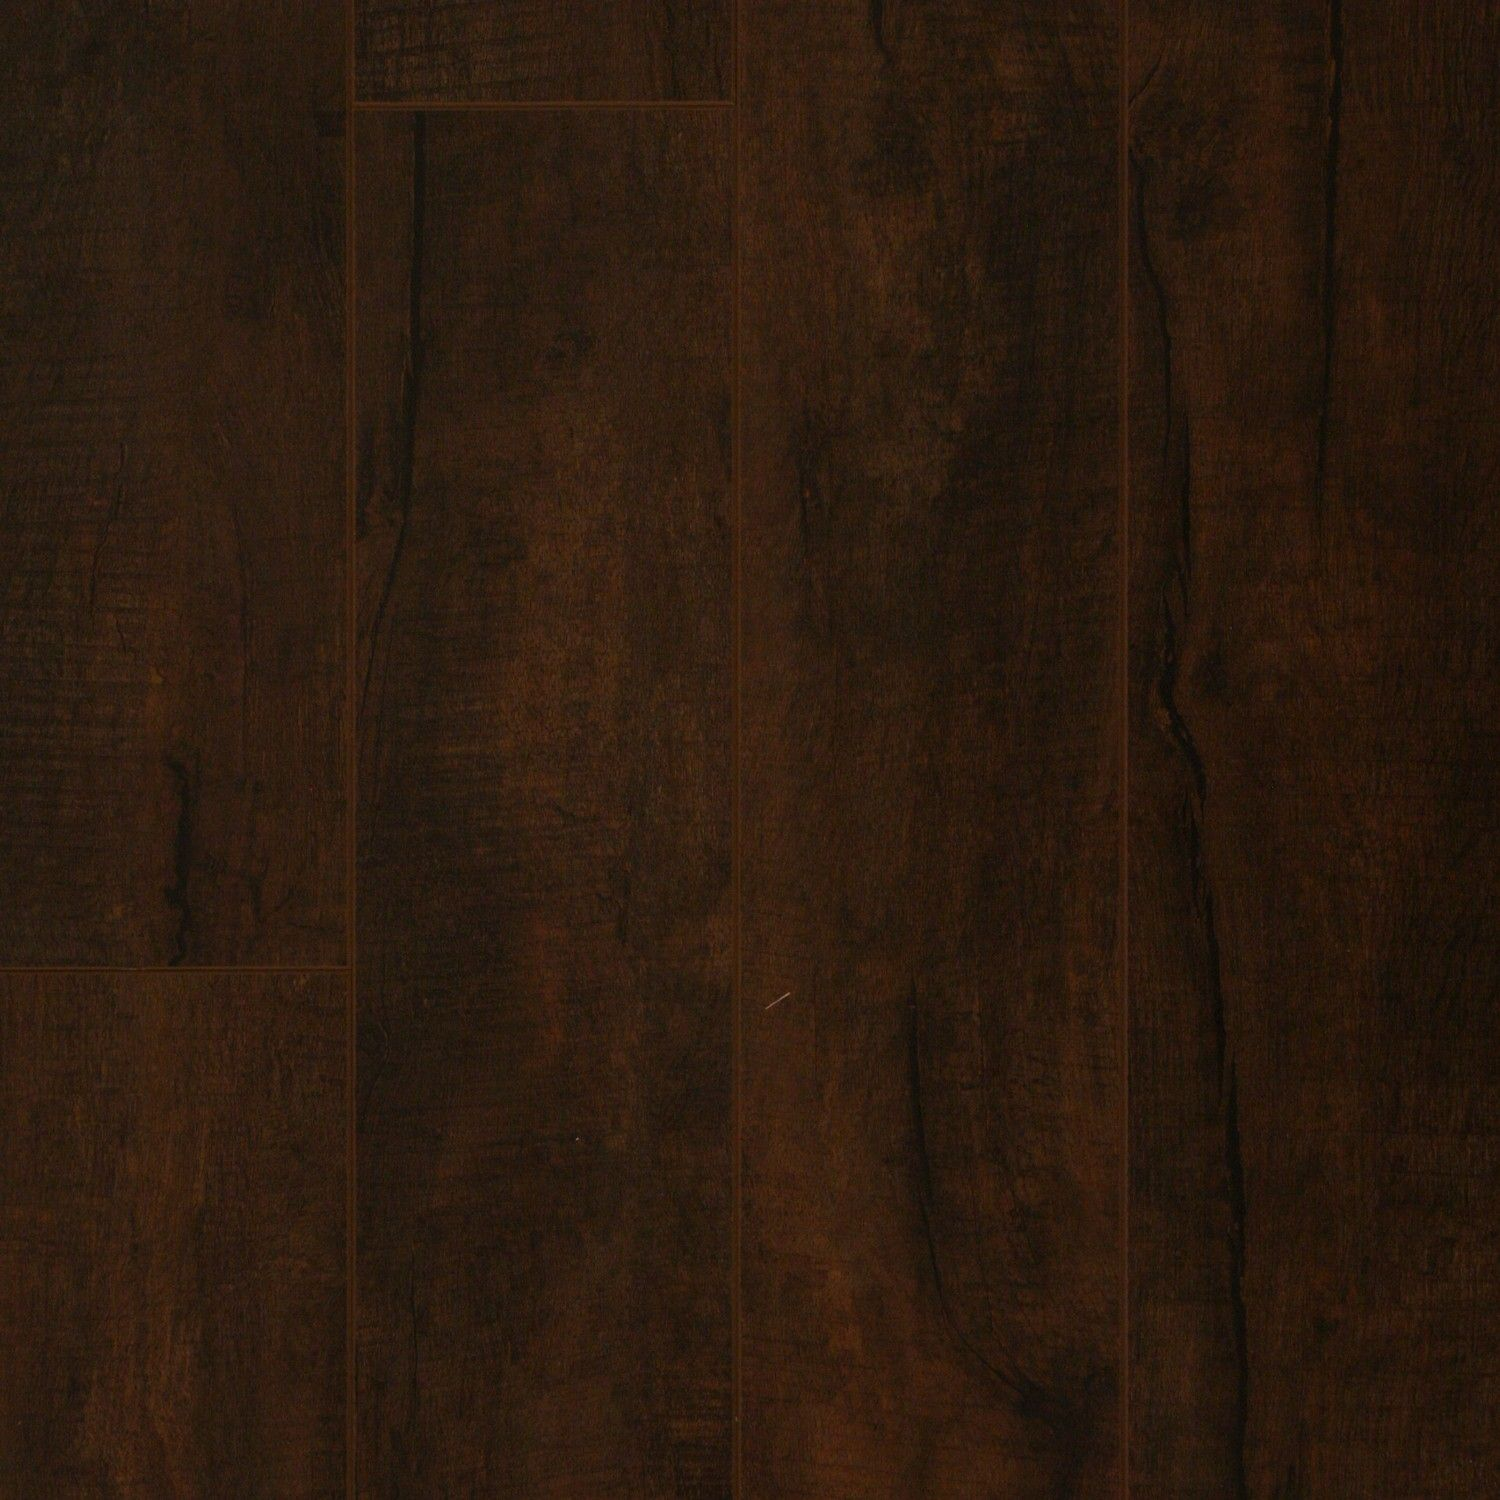 Fedora from the Masterpiece Collection by Artisan Floors is our 5